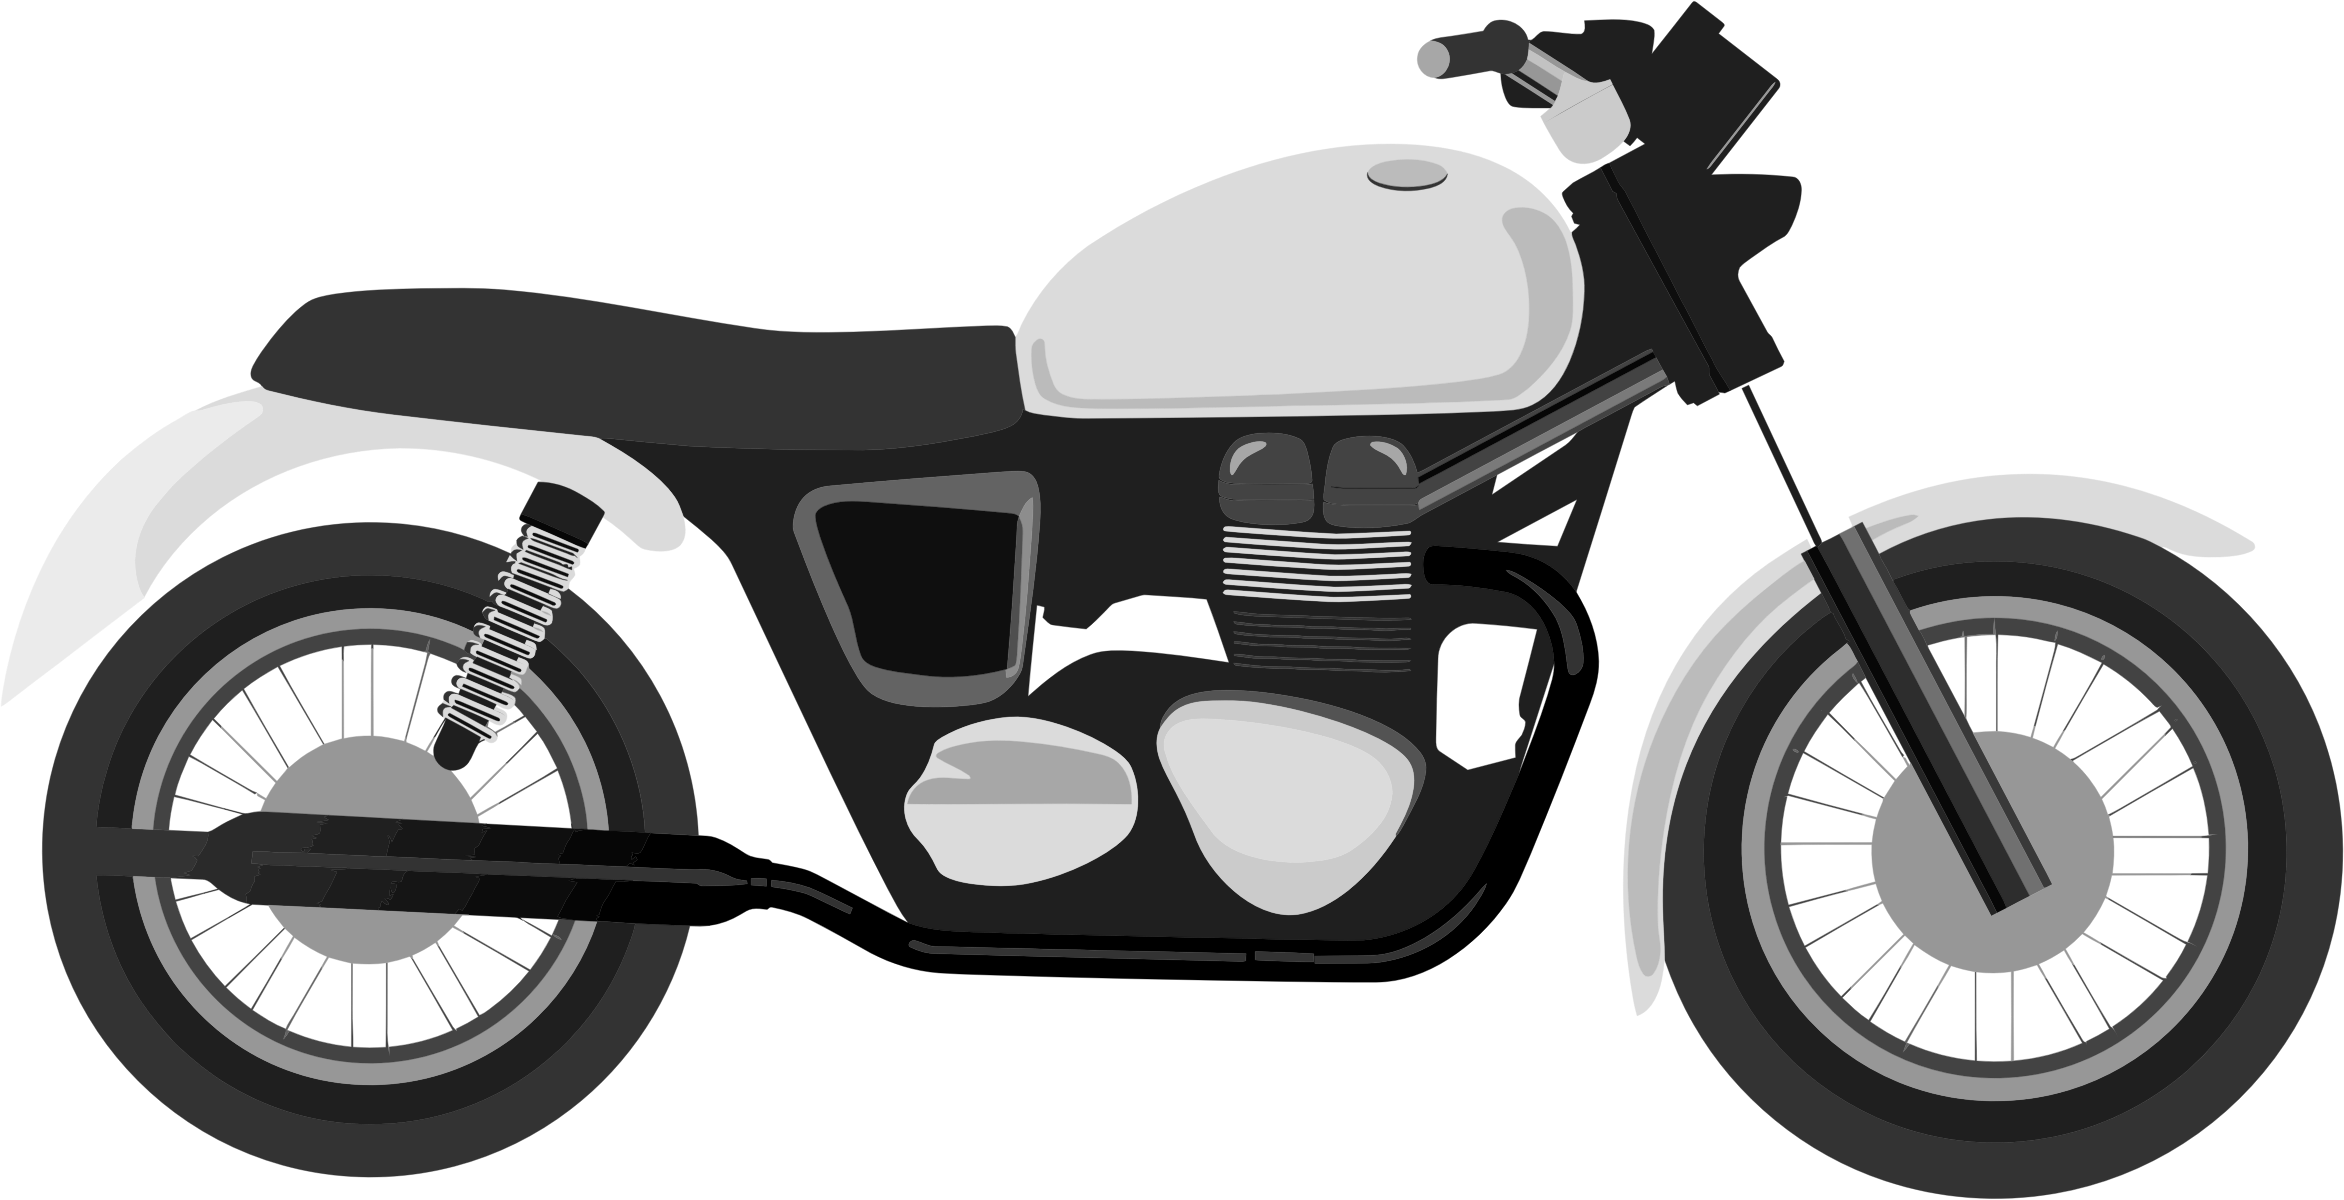 Grayscale Motorcycle by GDJ